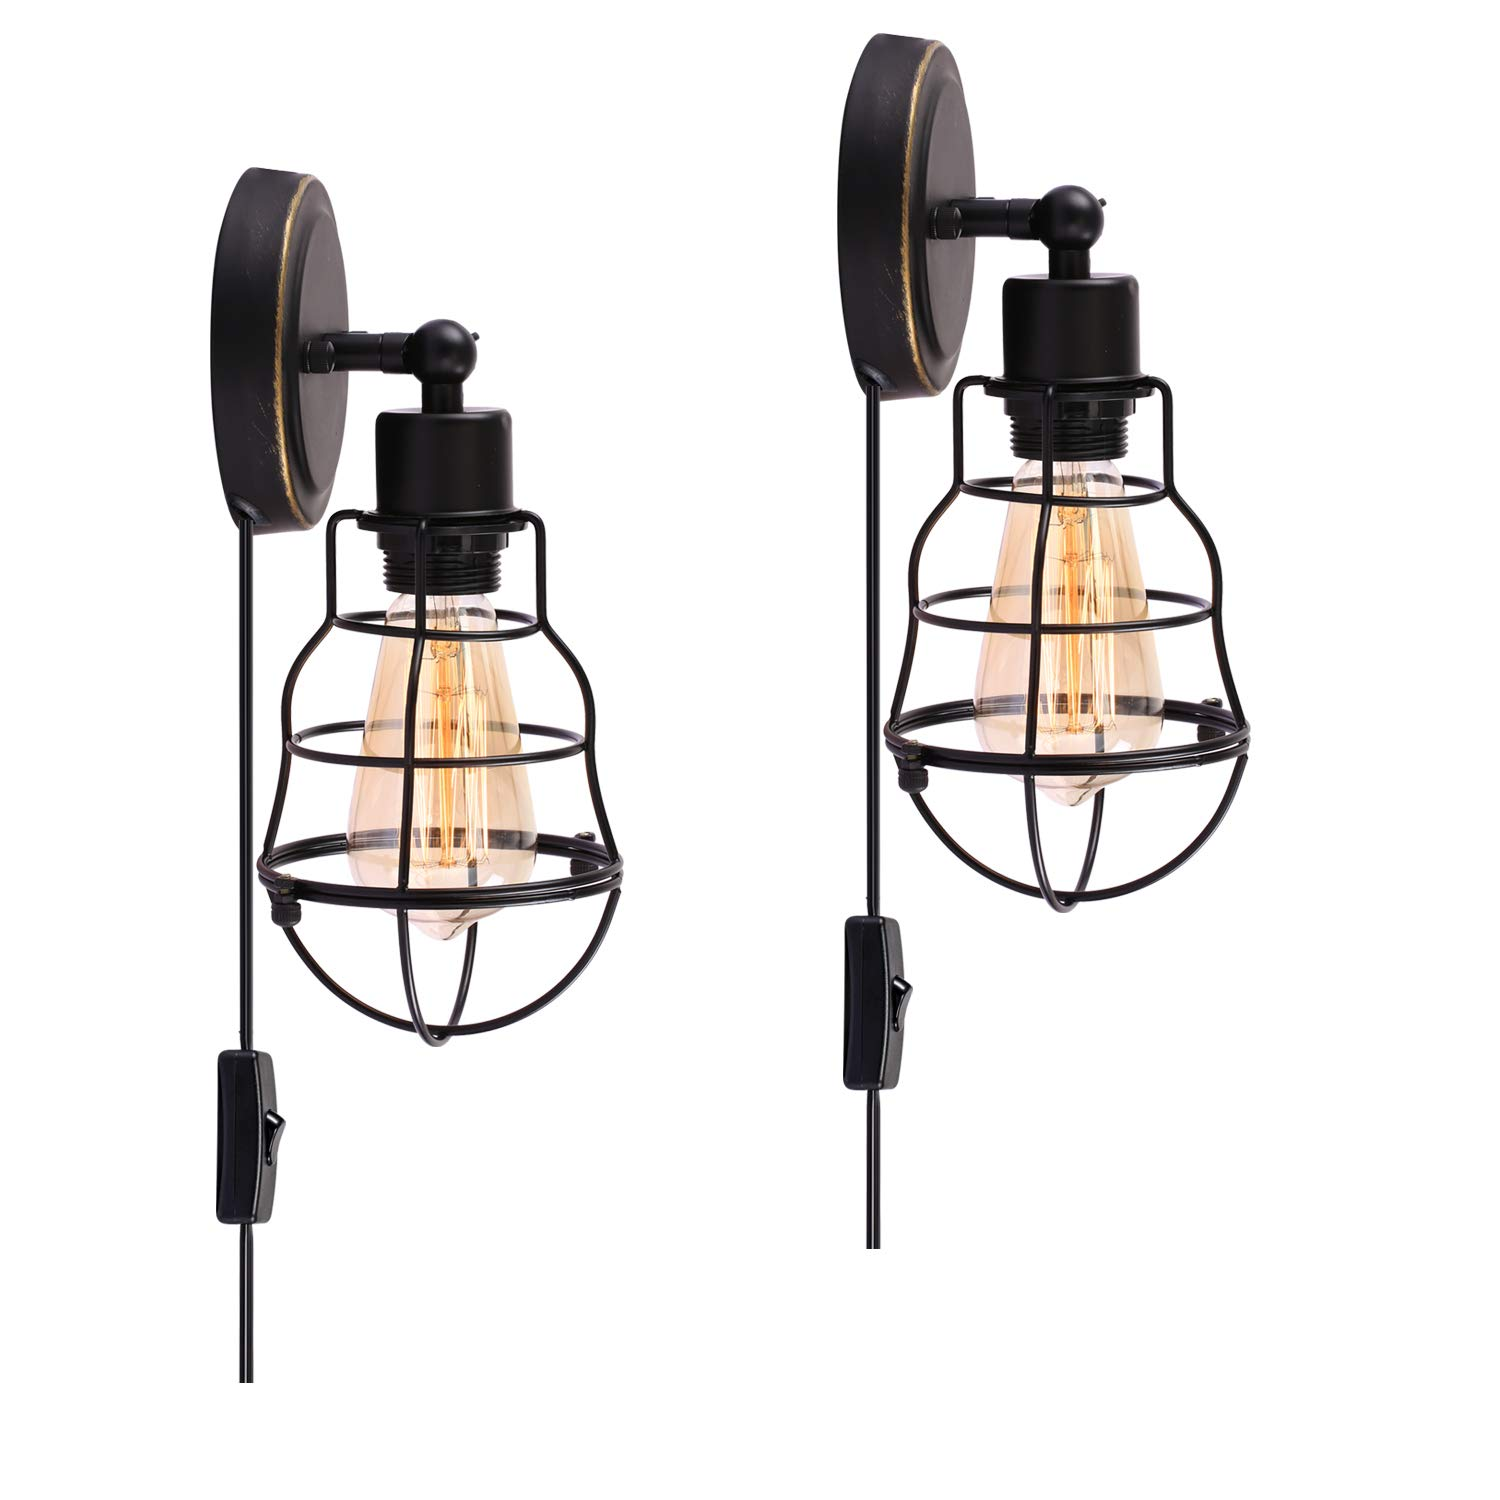 Wire Cage Industrial Wall Sconce Plug In Light Vintage Style Wiring A To Fixture Edison E26 Base For Headboard